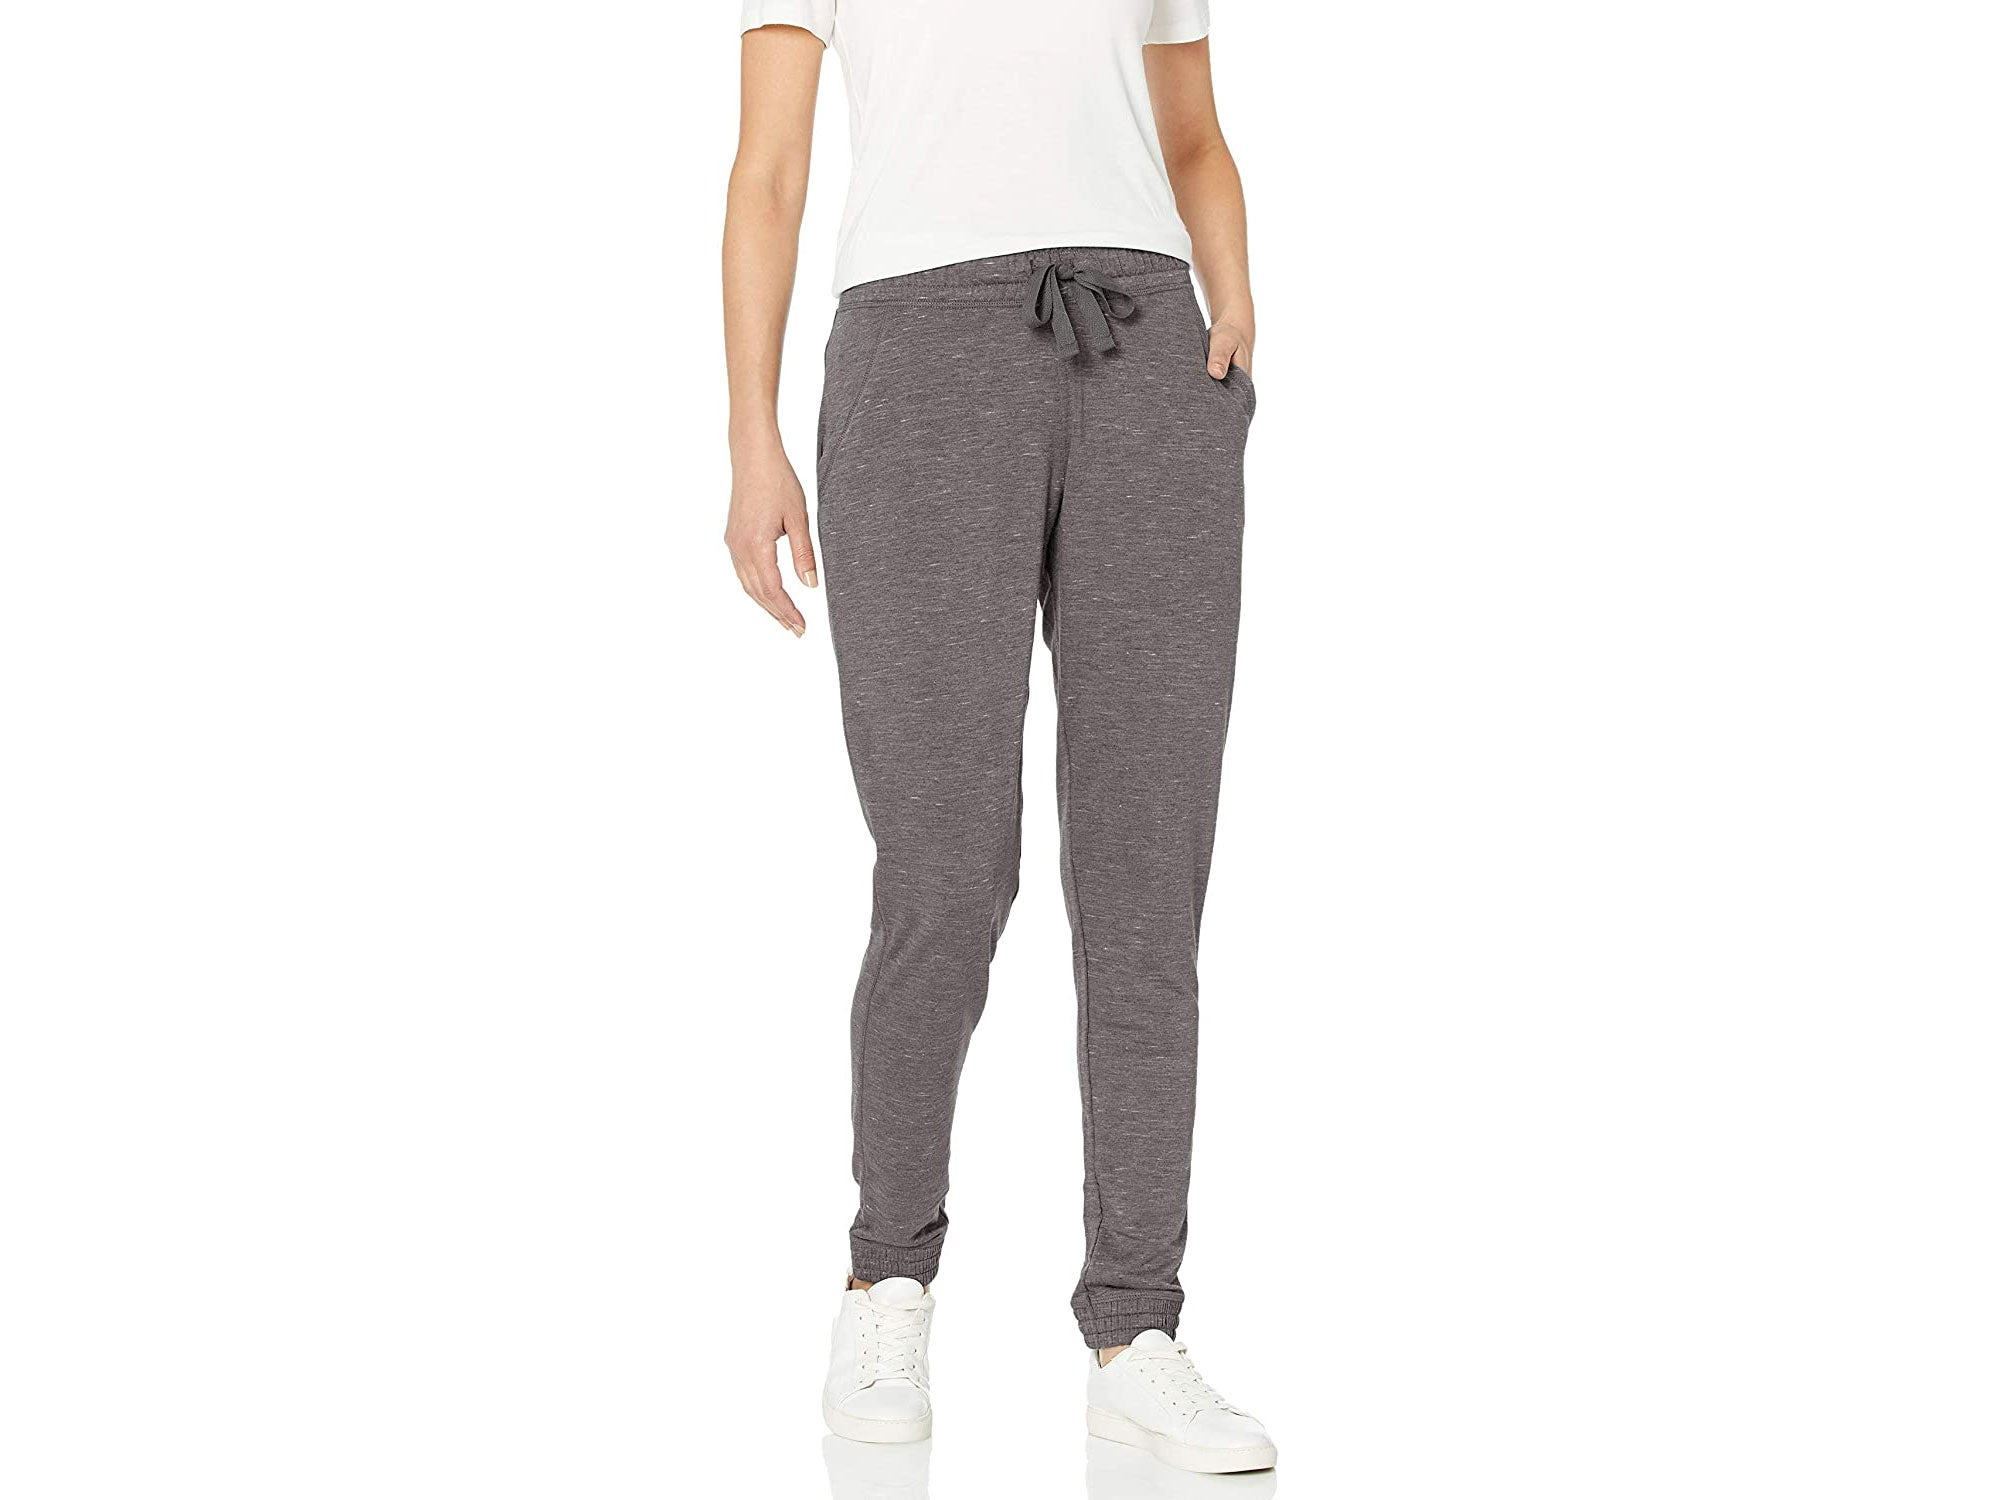 Hanes Women's Jogger with Pockets